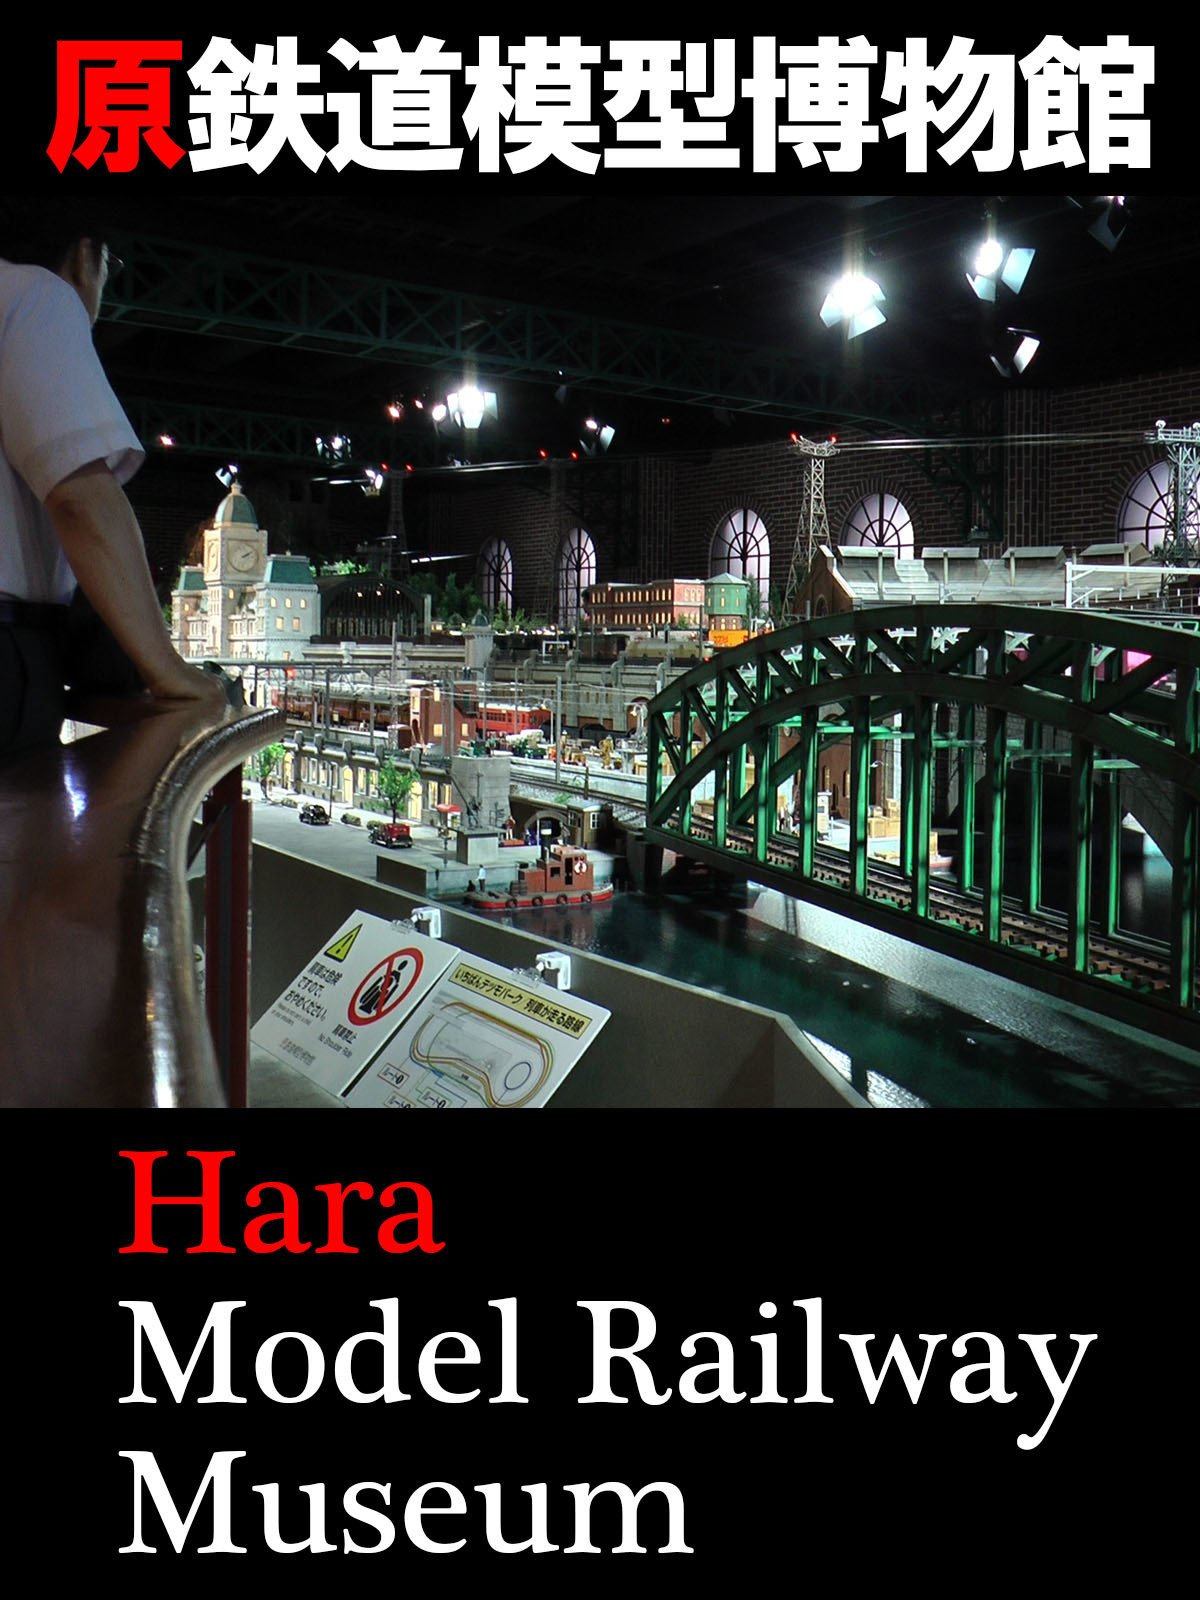 ビデオクリップ: Hara Model Railway Museum